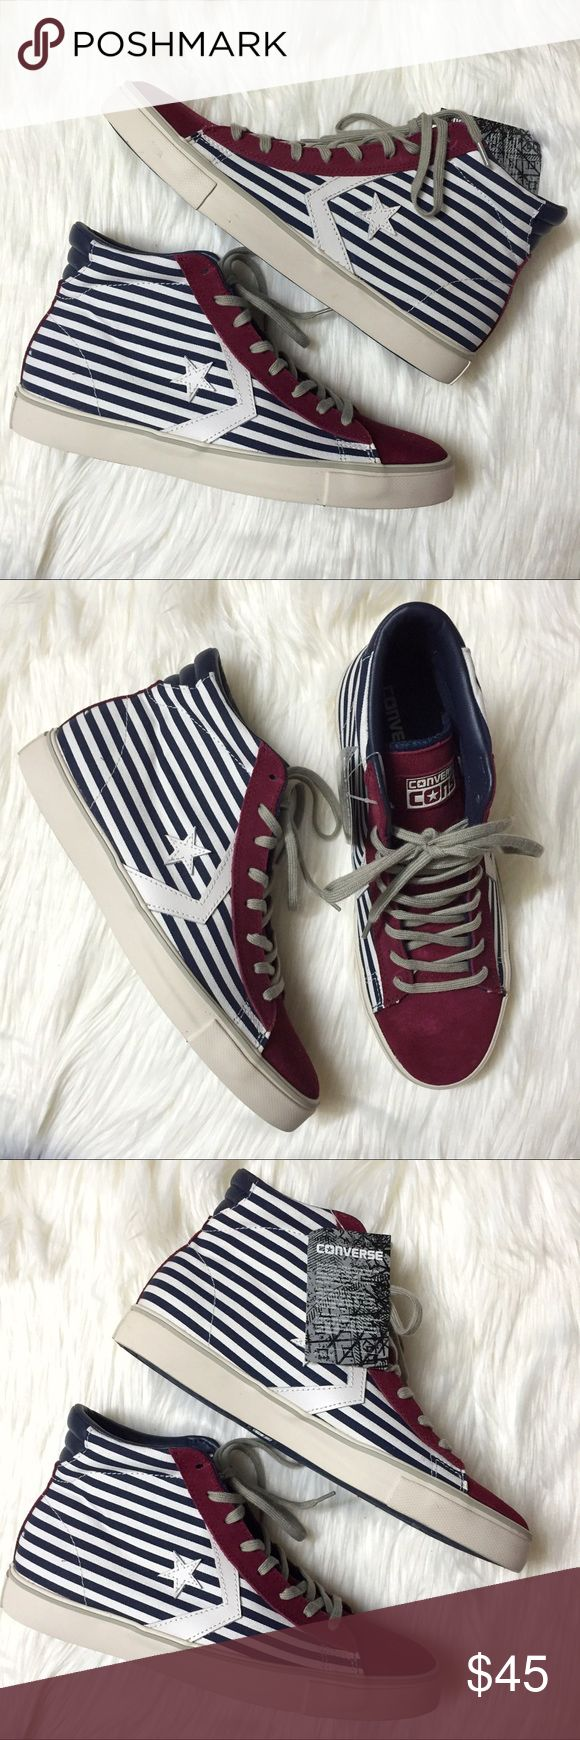 Converse Pro Leather Vulcanic Mid Sneakers Brand new with box (missing lid), men's size 9. A men's size 9 is equivalent to a women's size 10.5. These Converse Pro Leather Vulcanized Mid Star and Stripes Sneakers add the perfect pop to your outfit! The white and blue bar stripes, with the white star, is accented with maroon. These are the perfect sneakers to wear for July 4th! Retails for $75! (Chuck Taylor All Stars) Converse Shoes Sneakers